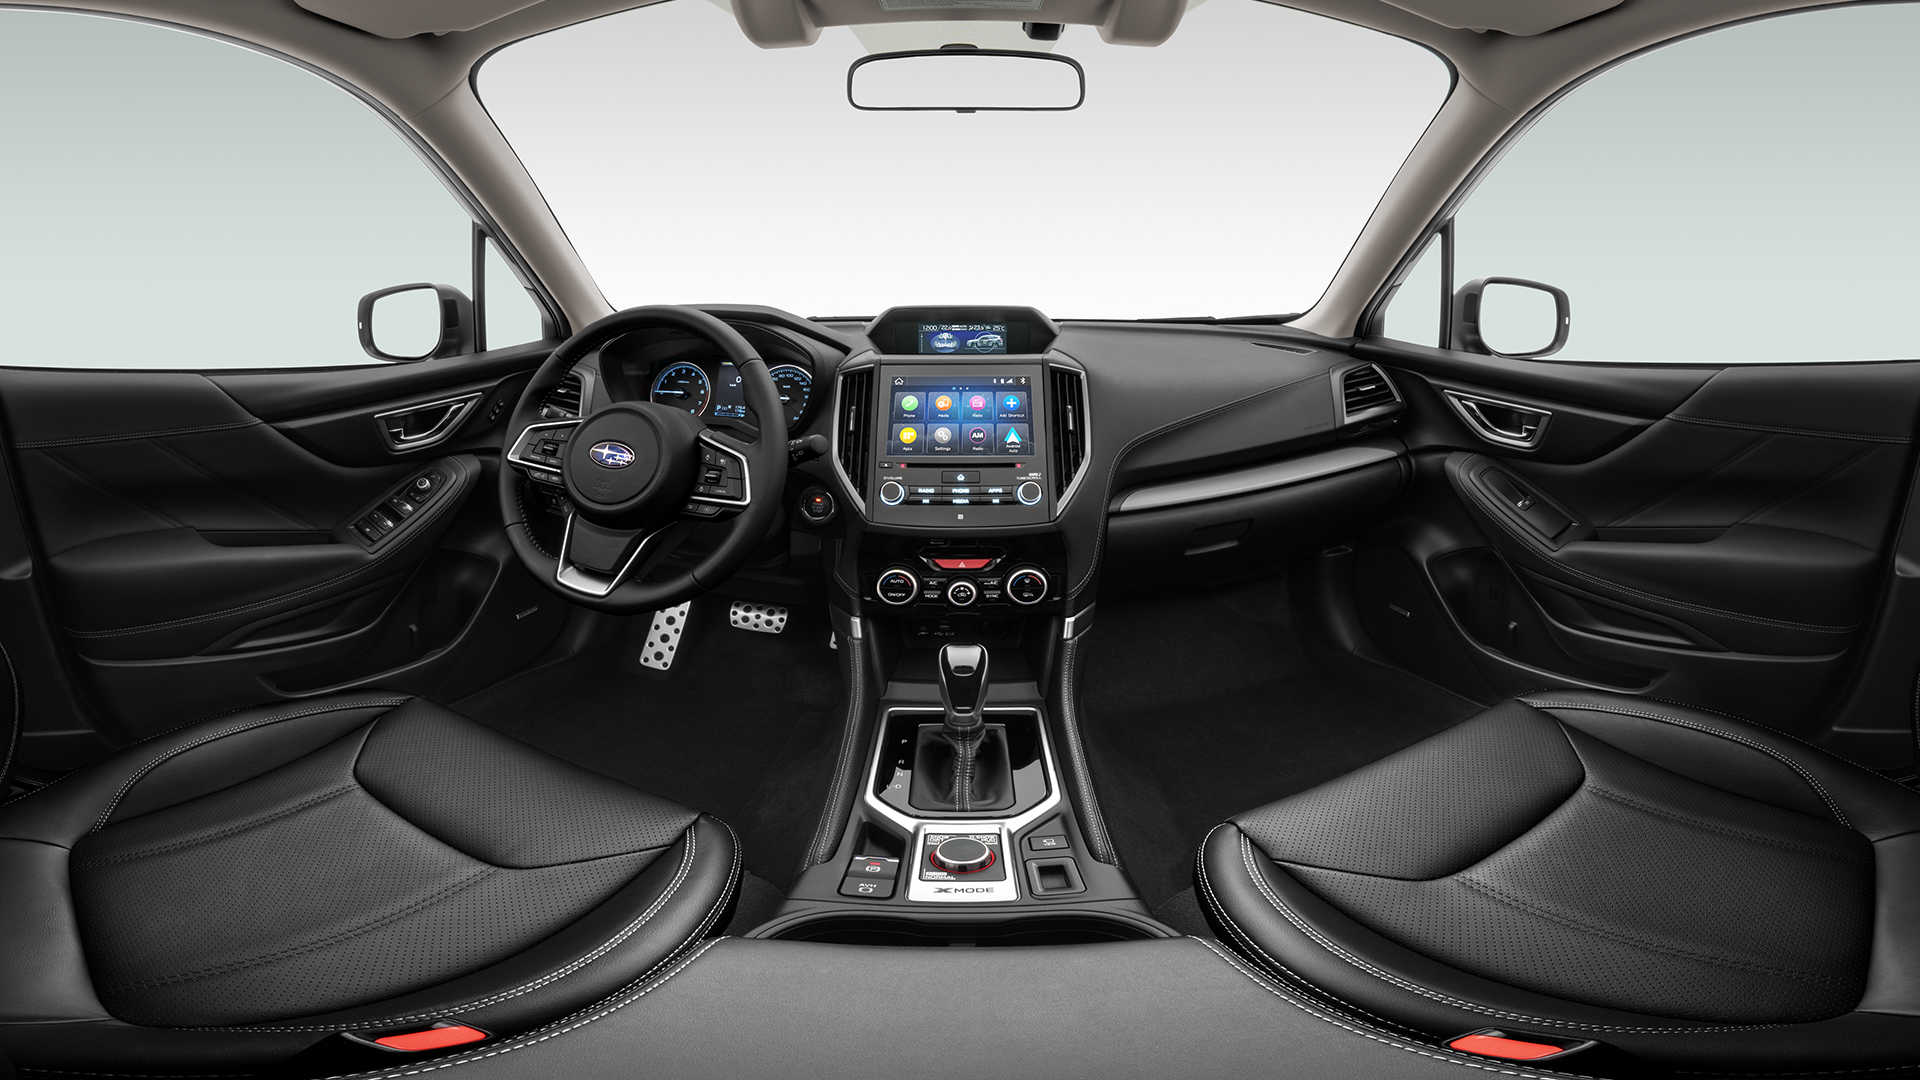 All New 2019 Subaru Forester Interior Features And Seating Options